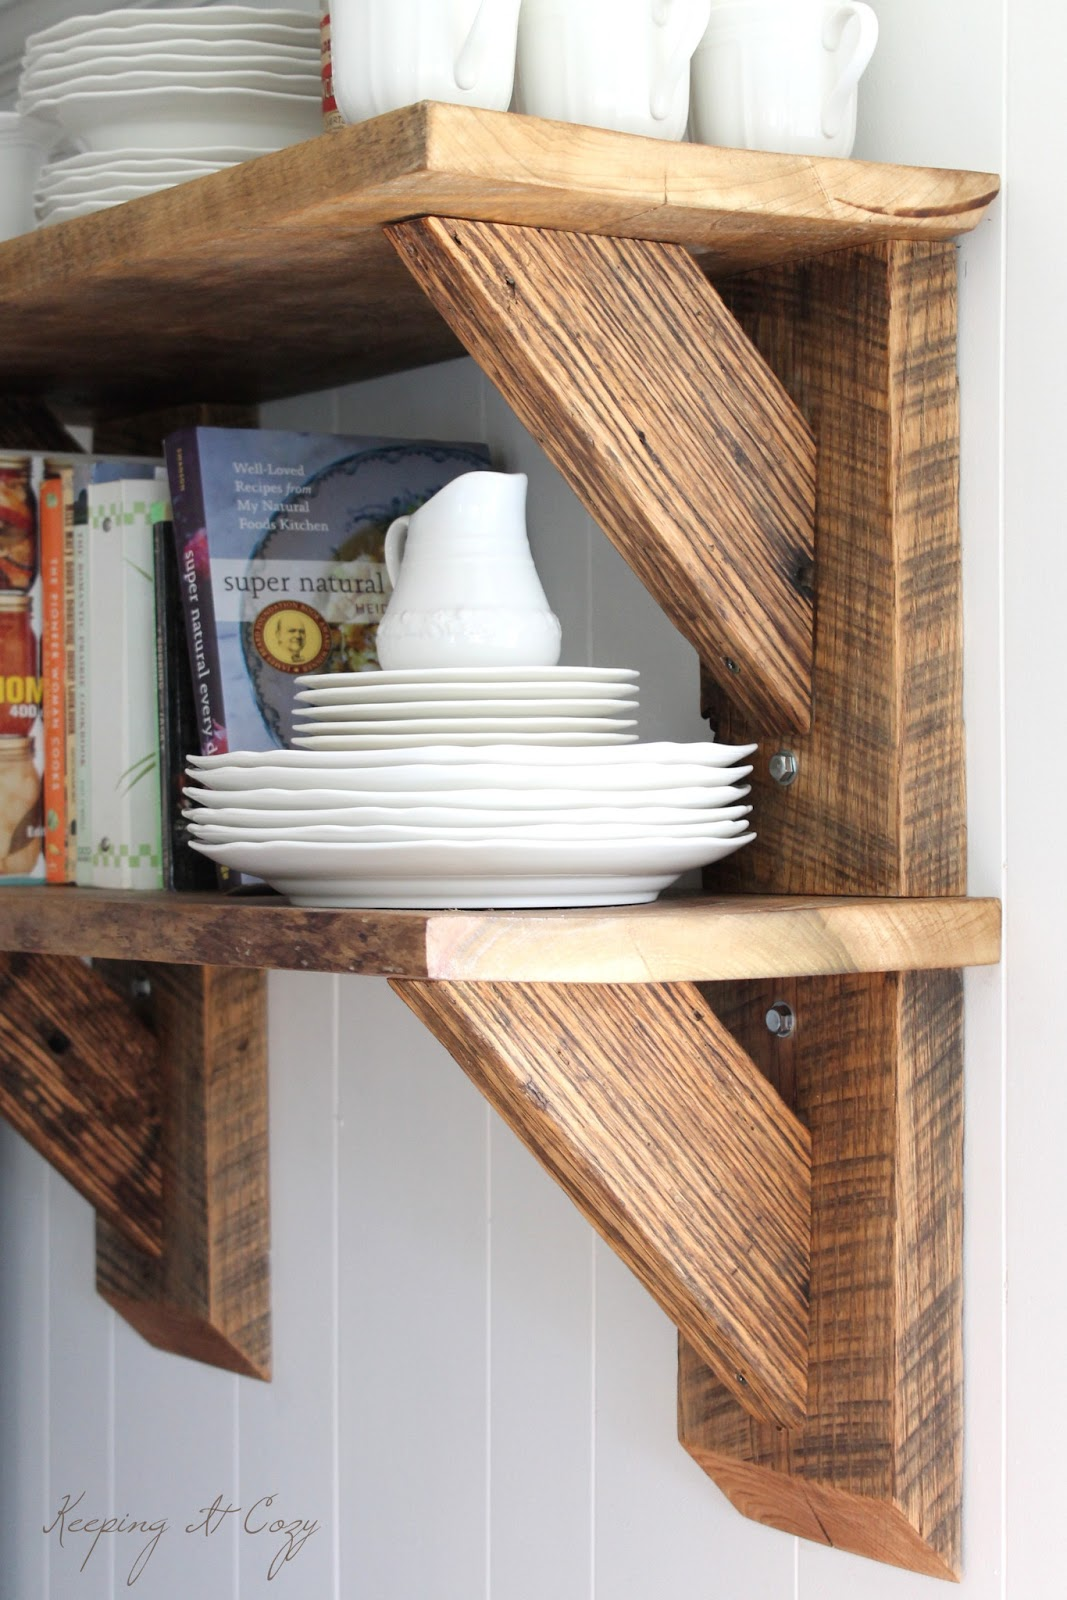 Kitchen Shelving Keeping It Cozy Reclaimed Wood Kitchen Shelves